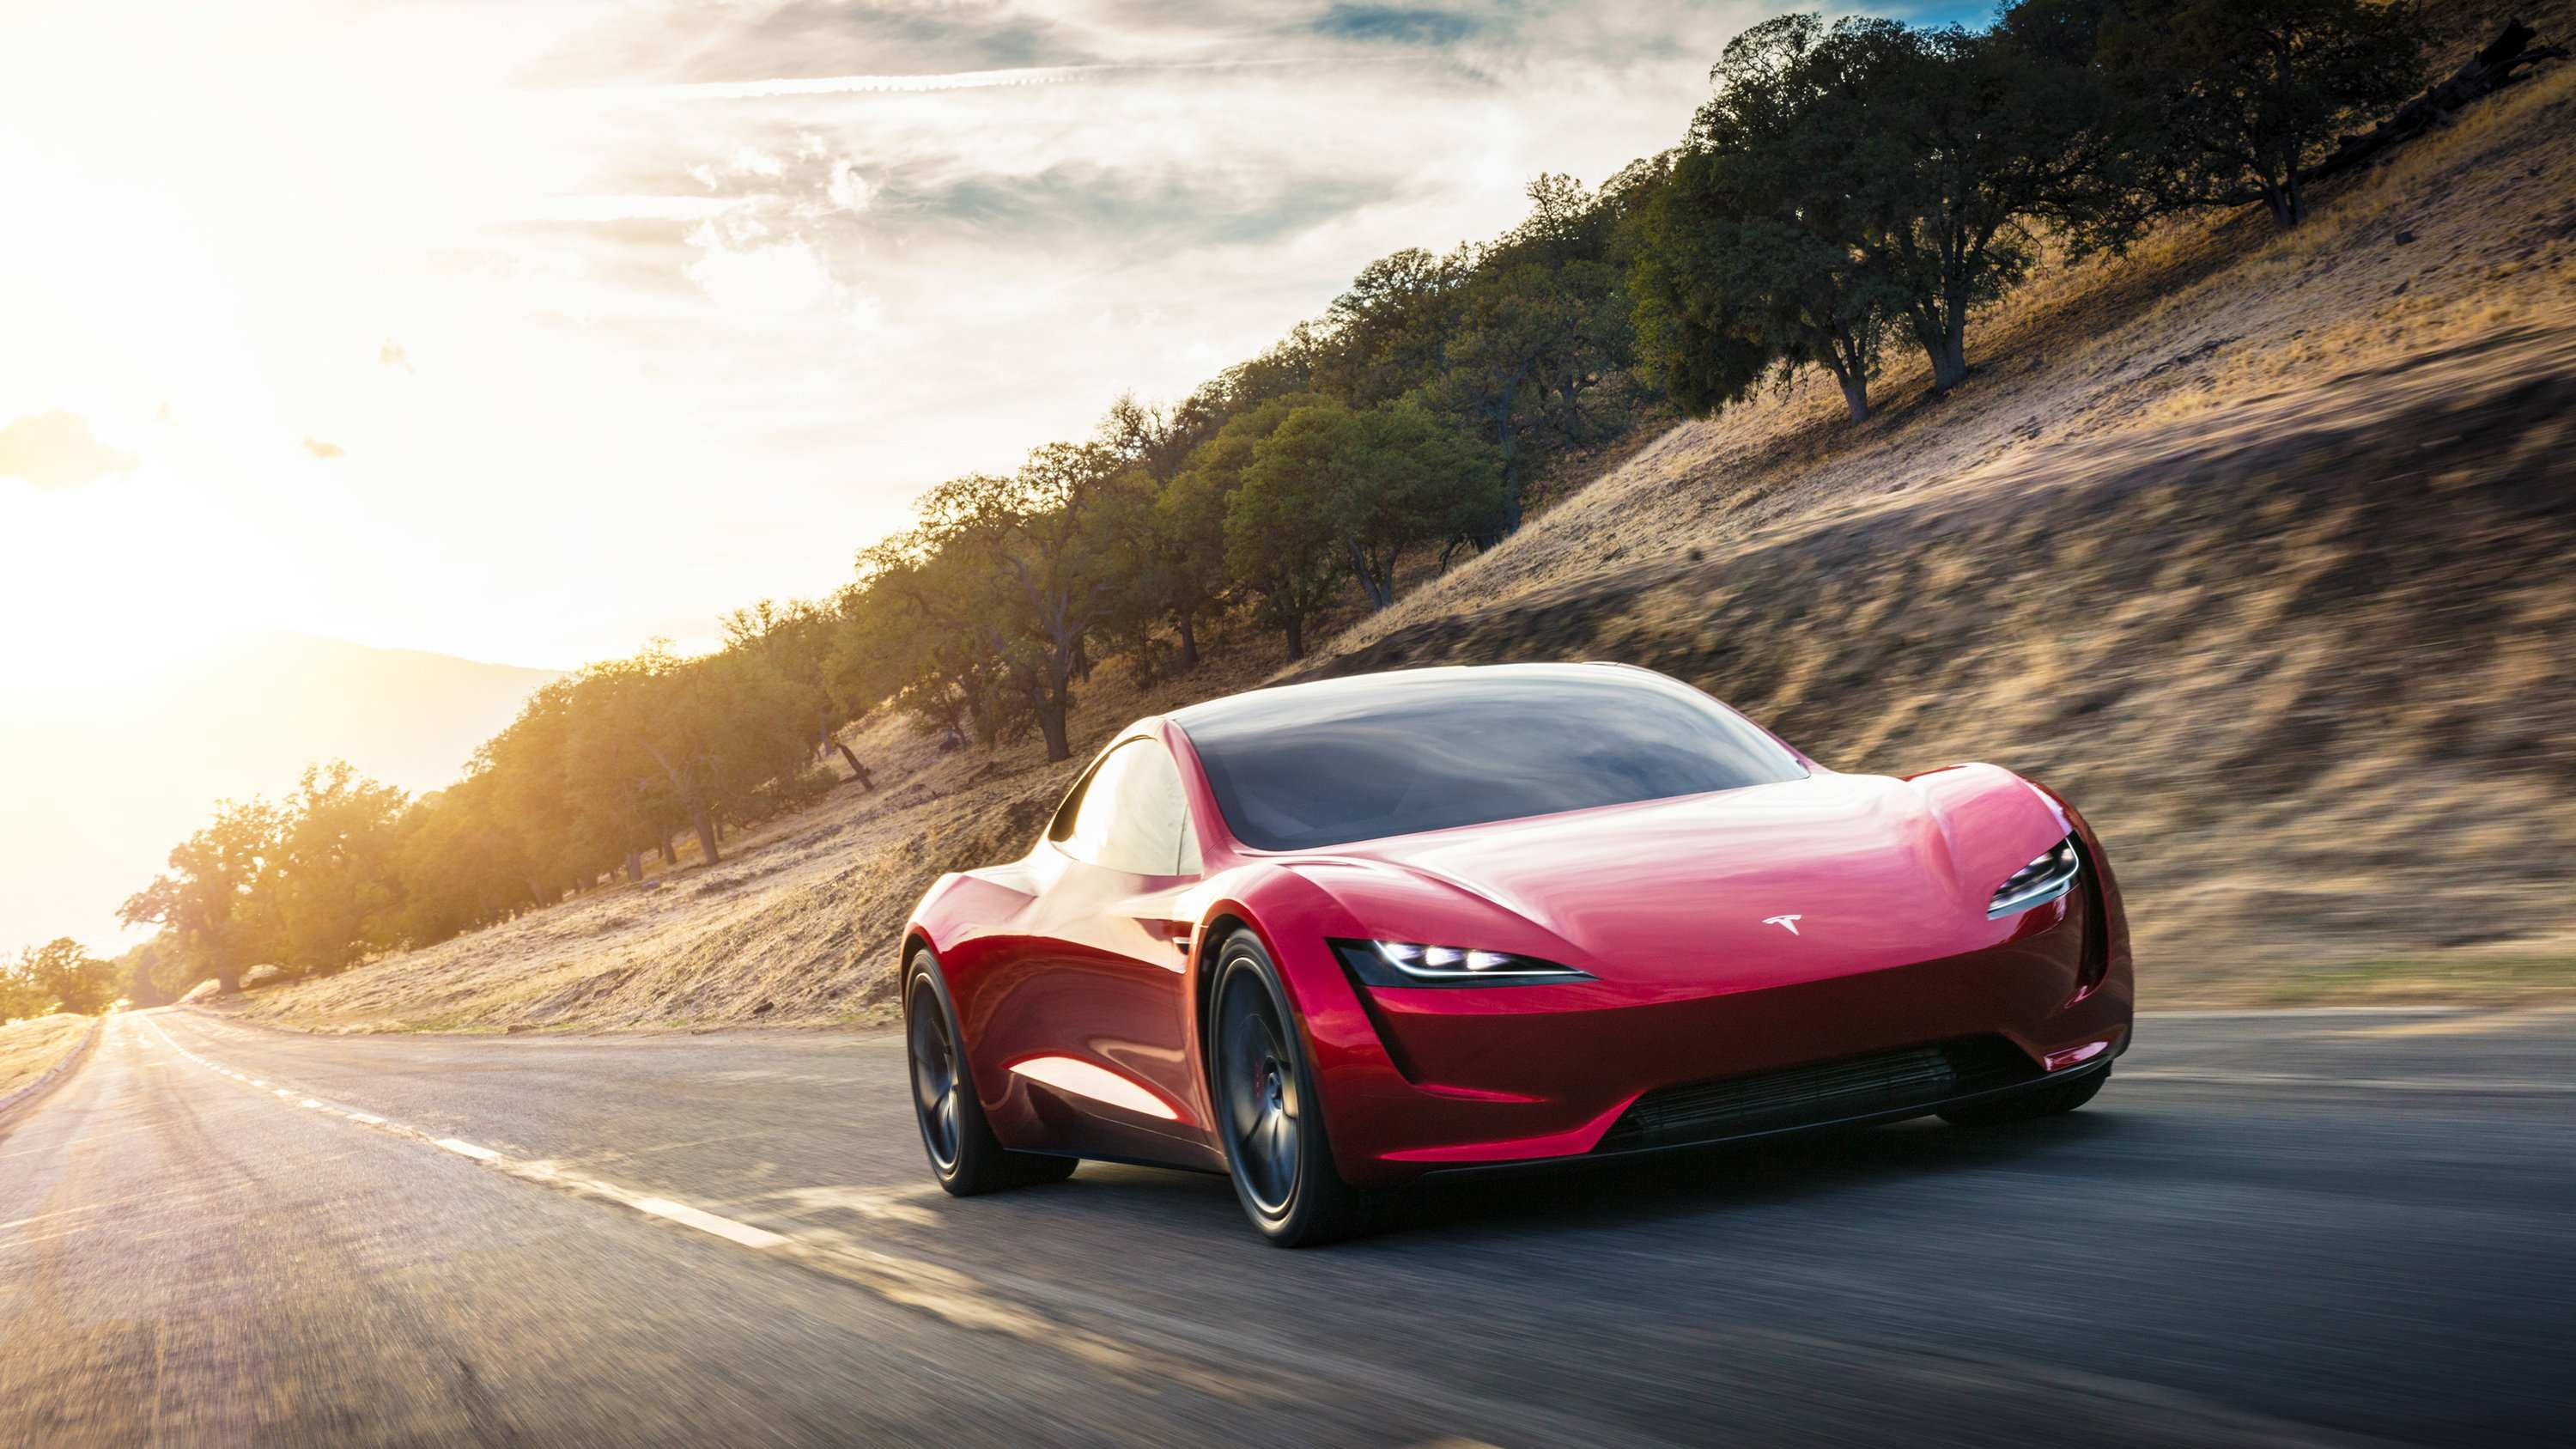 46 A 2020 Tesla Roadster Charge Time New Model And Performance